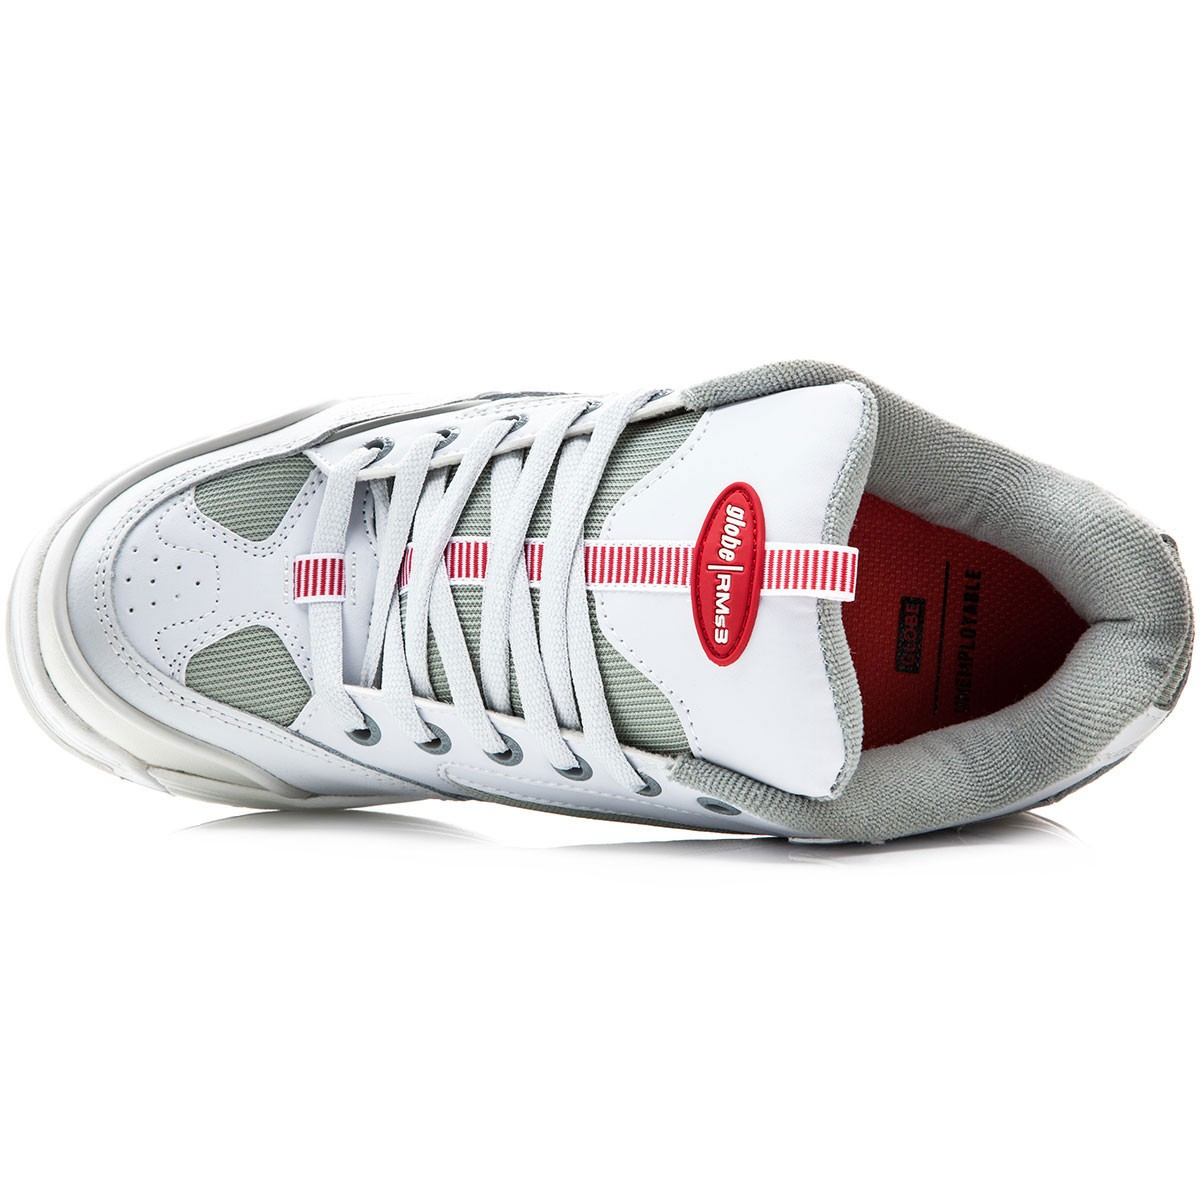 Globe RMs3 Classic Shoes - White White - 9.0 53111a2352f